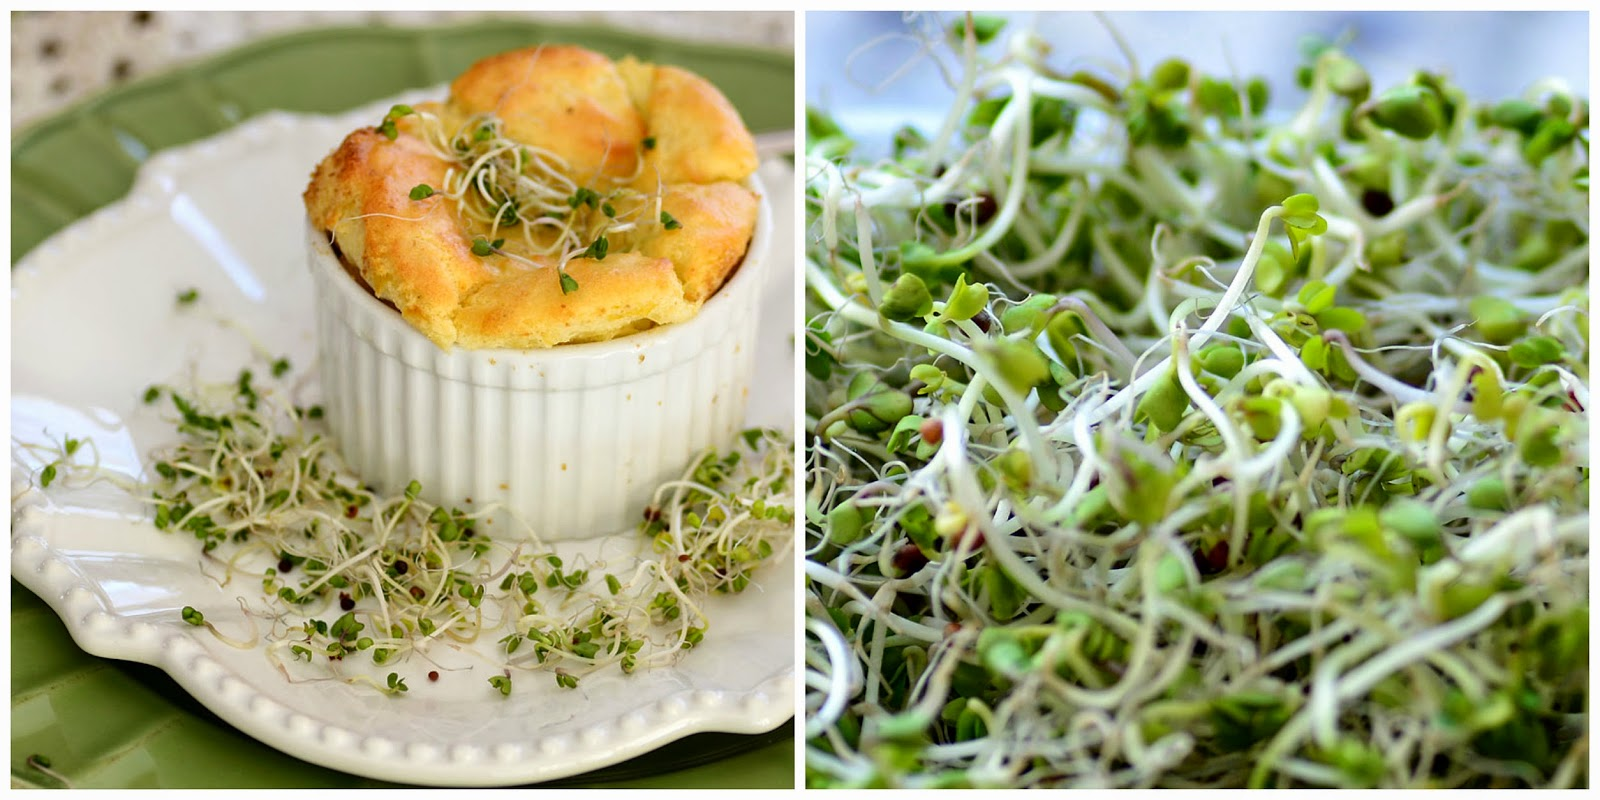 ... in the Kitchen: Irish Potato and Cabbage Soufflé with Smoked Cheddar